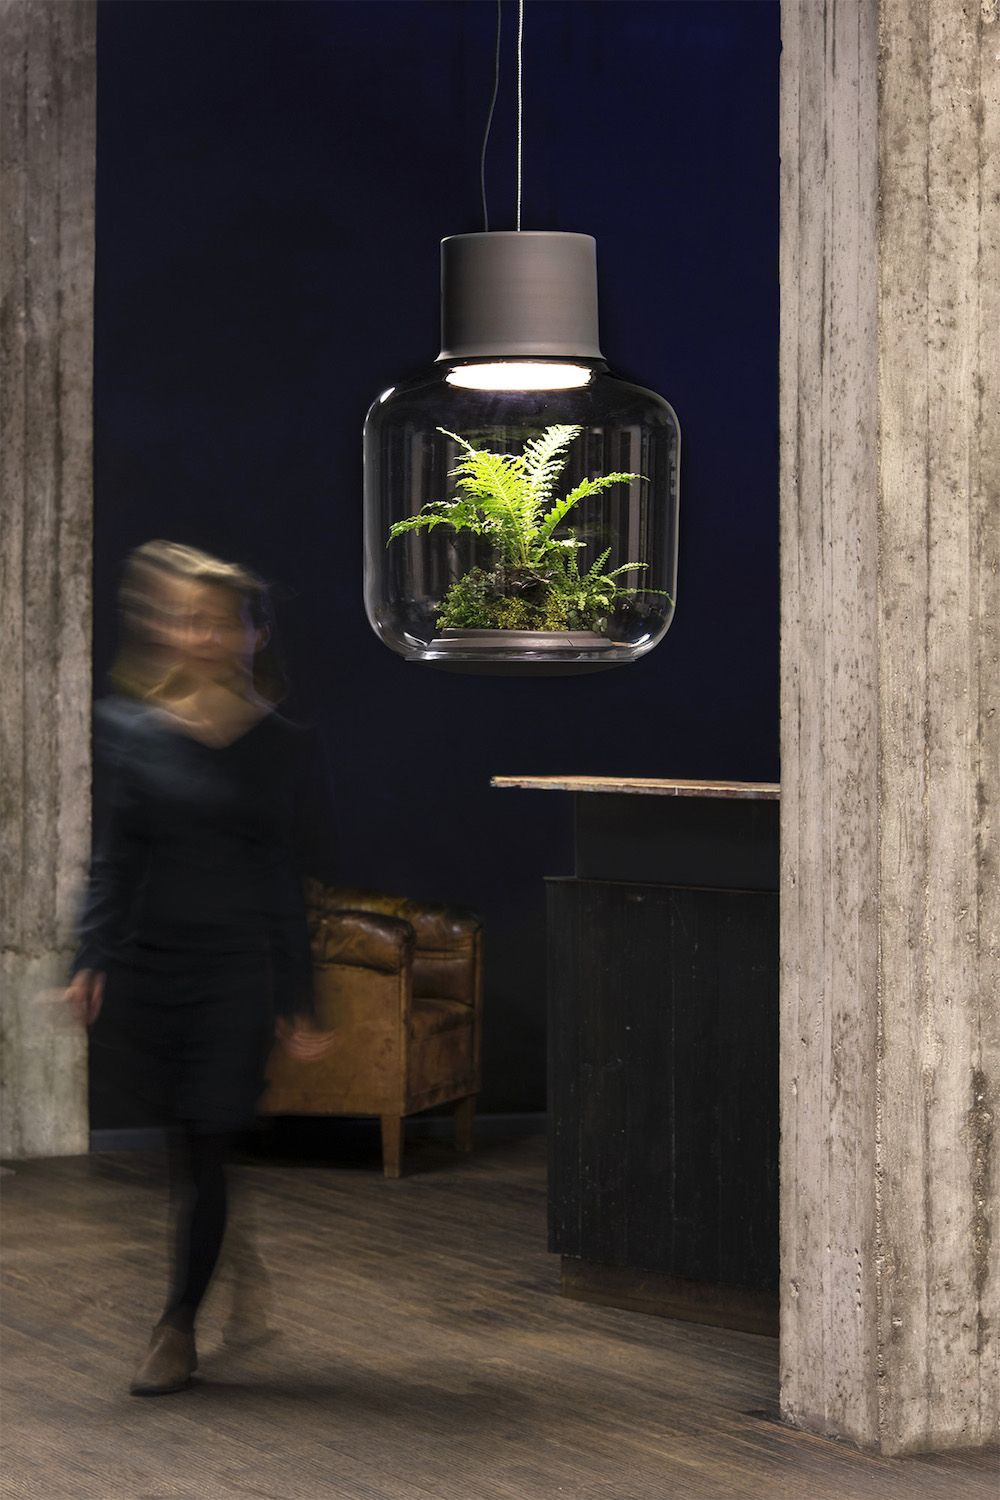 Nui Light Your Studio Terrarium Space By Suspended Lamps With DWE9I2H